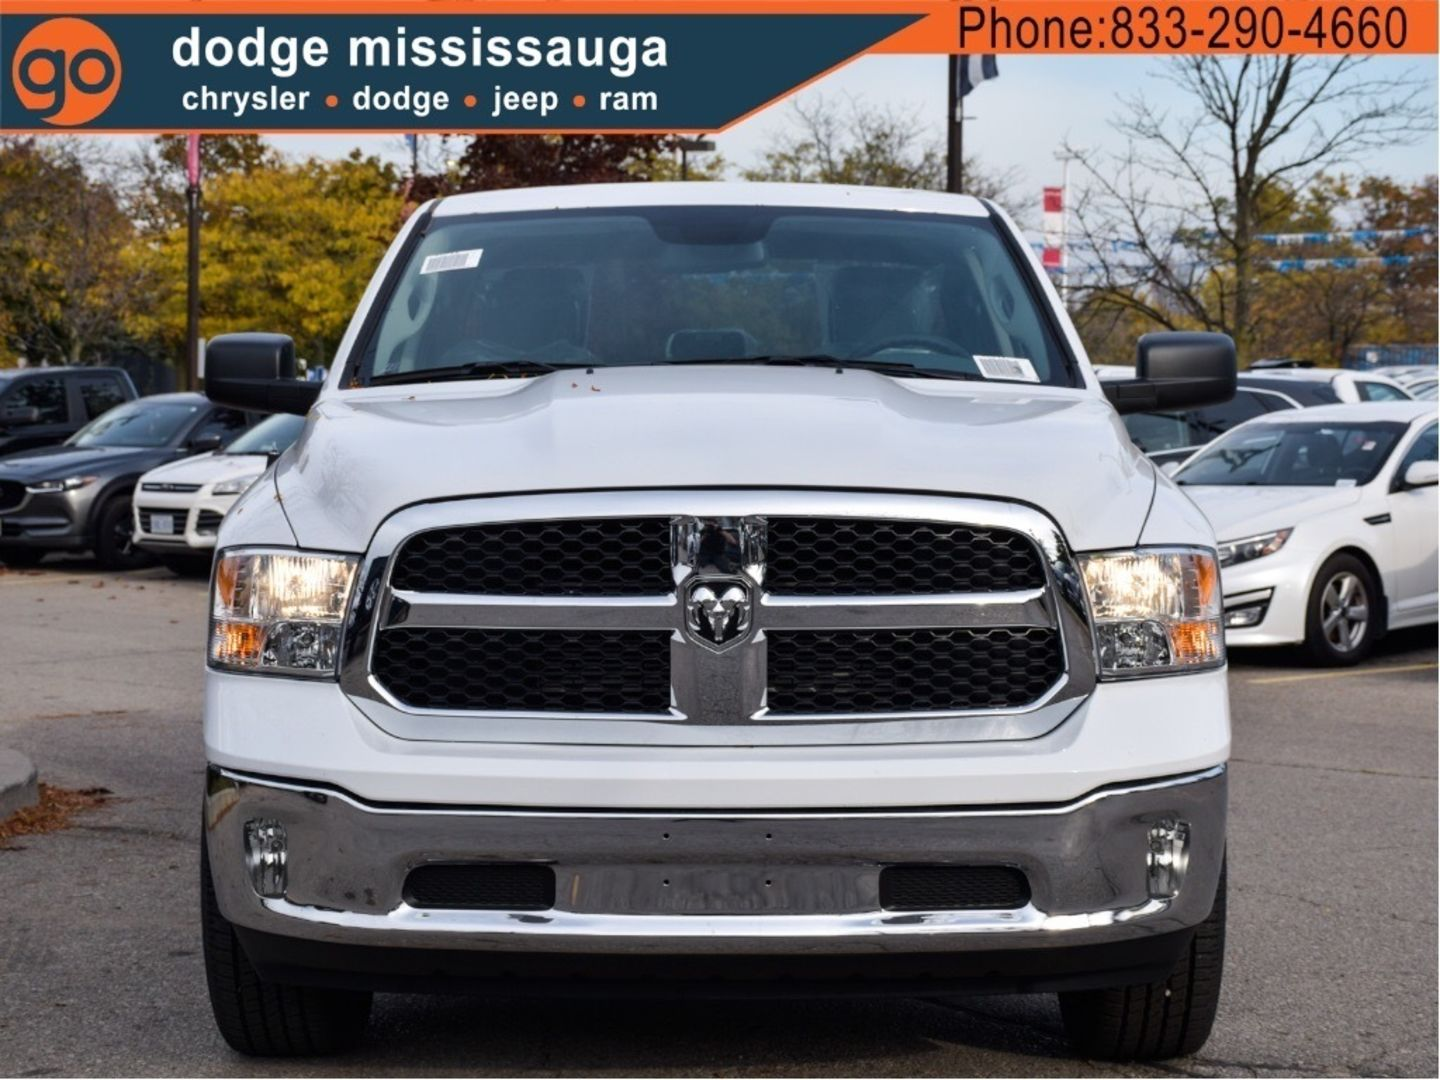 2019 Ram 1500 Classic Tradesman for sale in Mississauga, Ontario